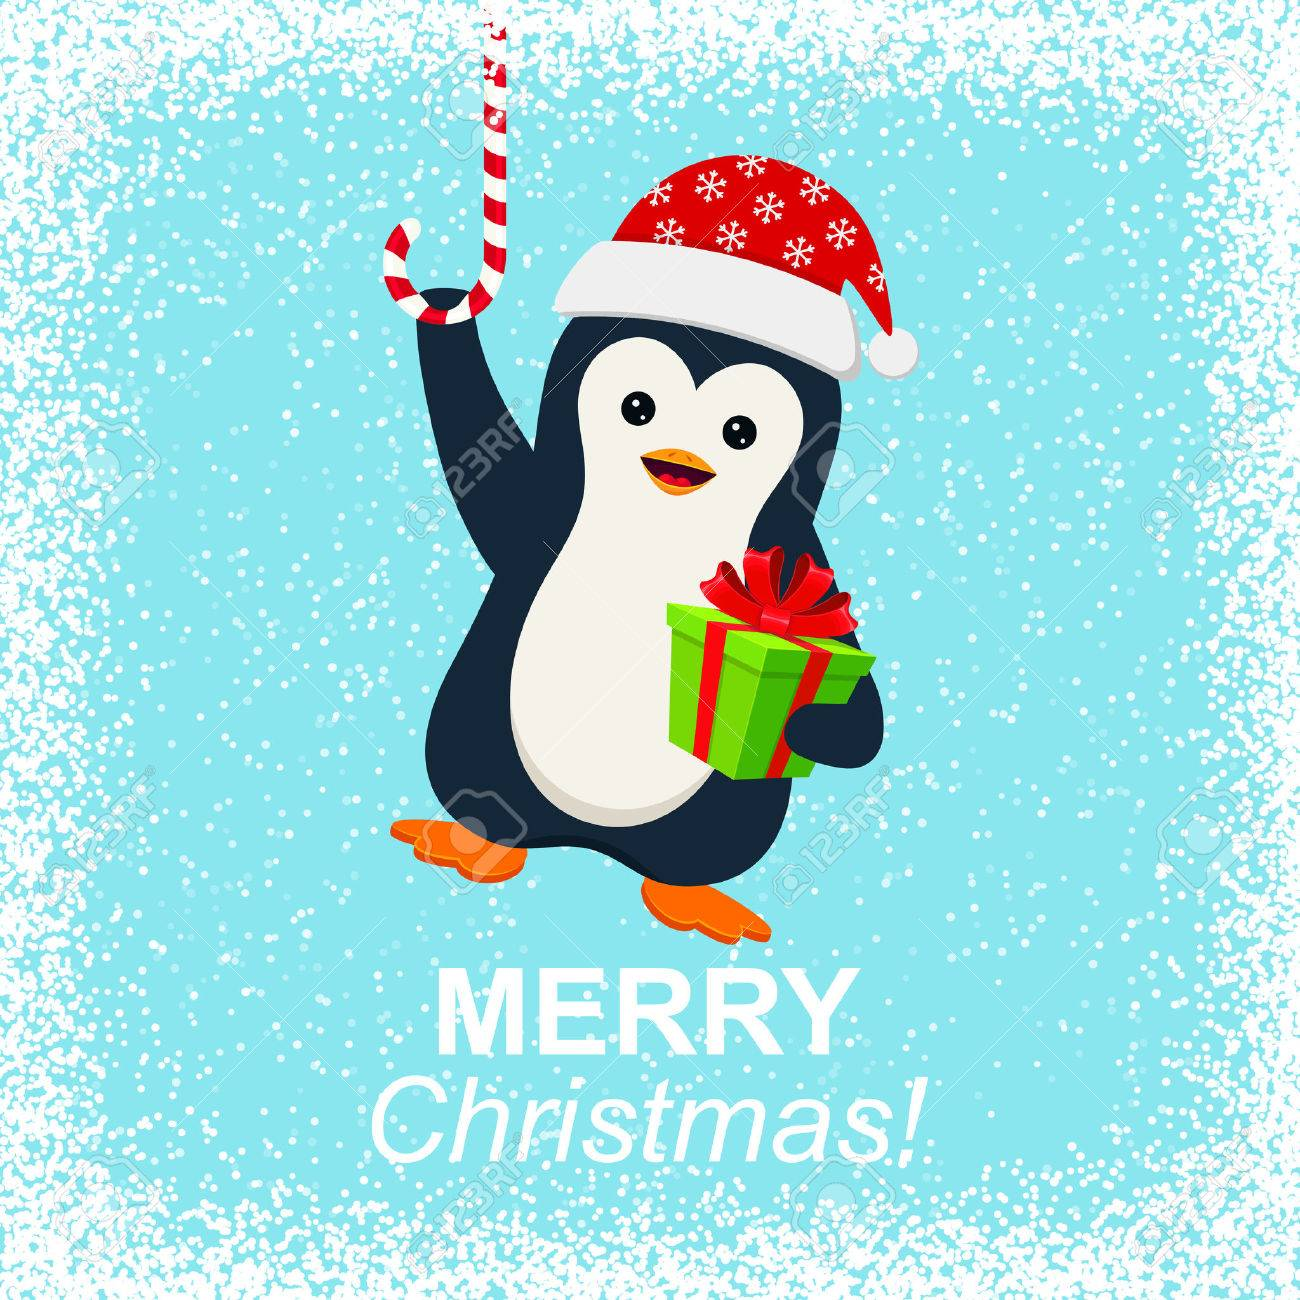 Cute Penguin With Gift Box And Merry Christmas Royalty Free Cliparts, Vectors, And Stock Illustration. Image 47449056.